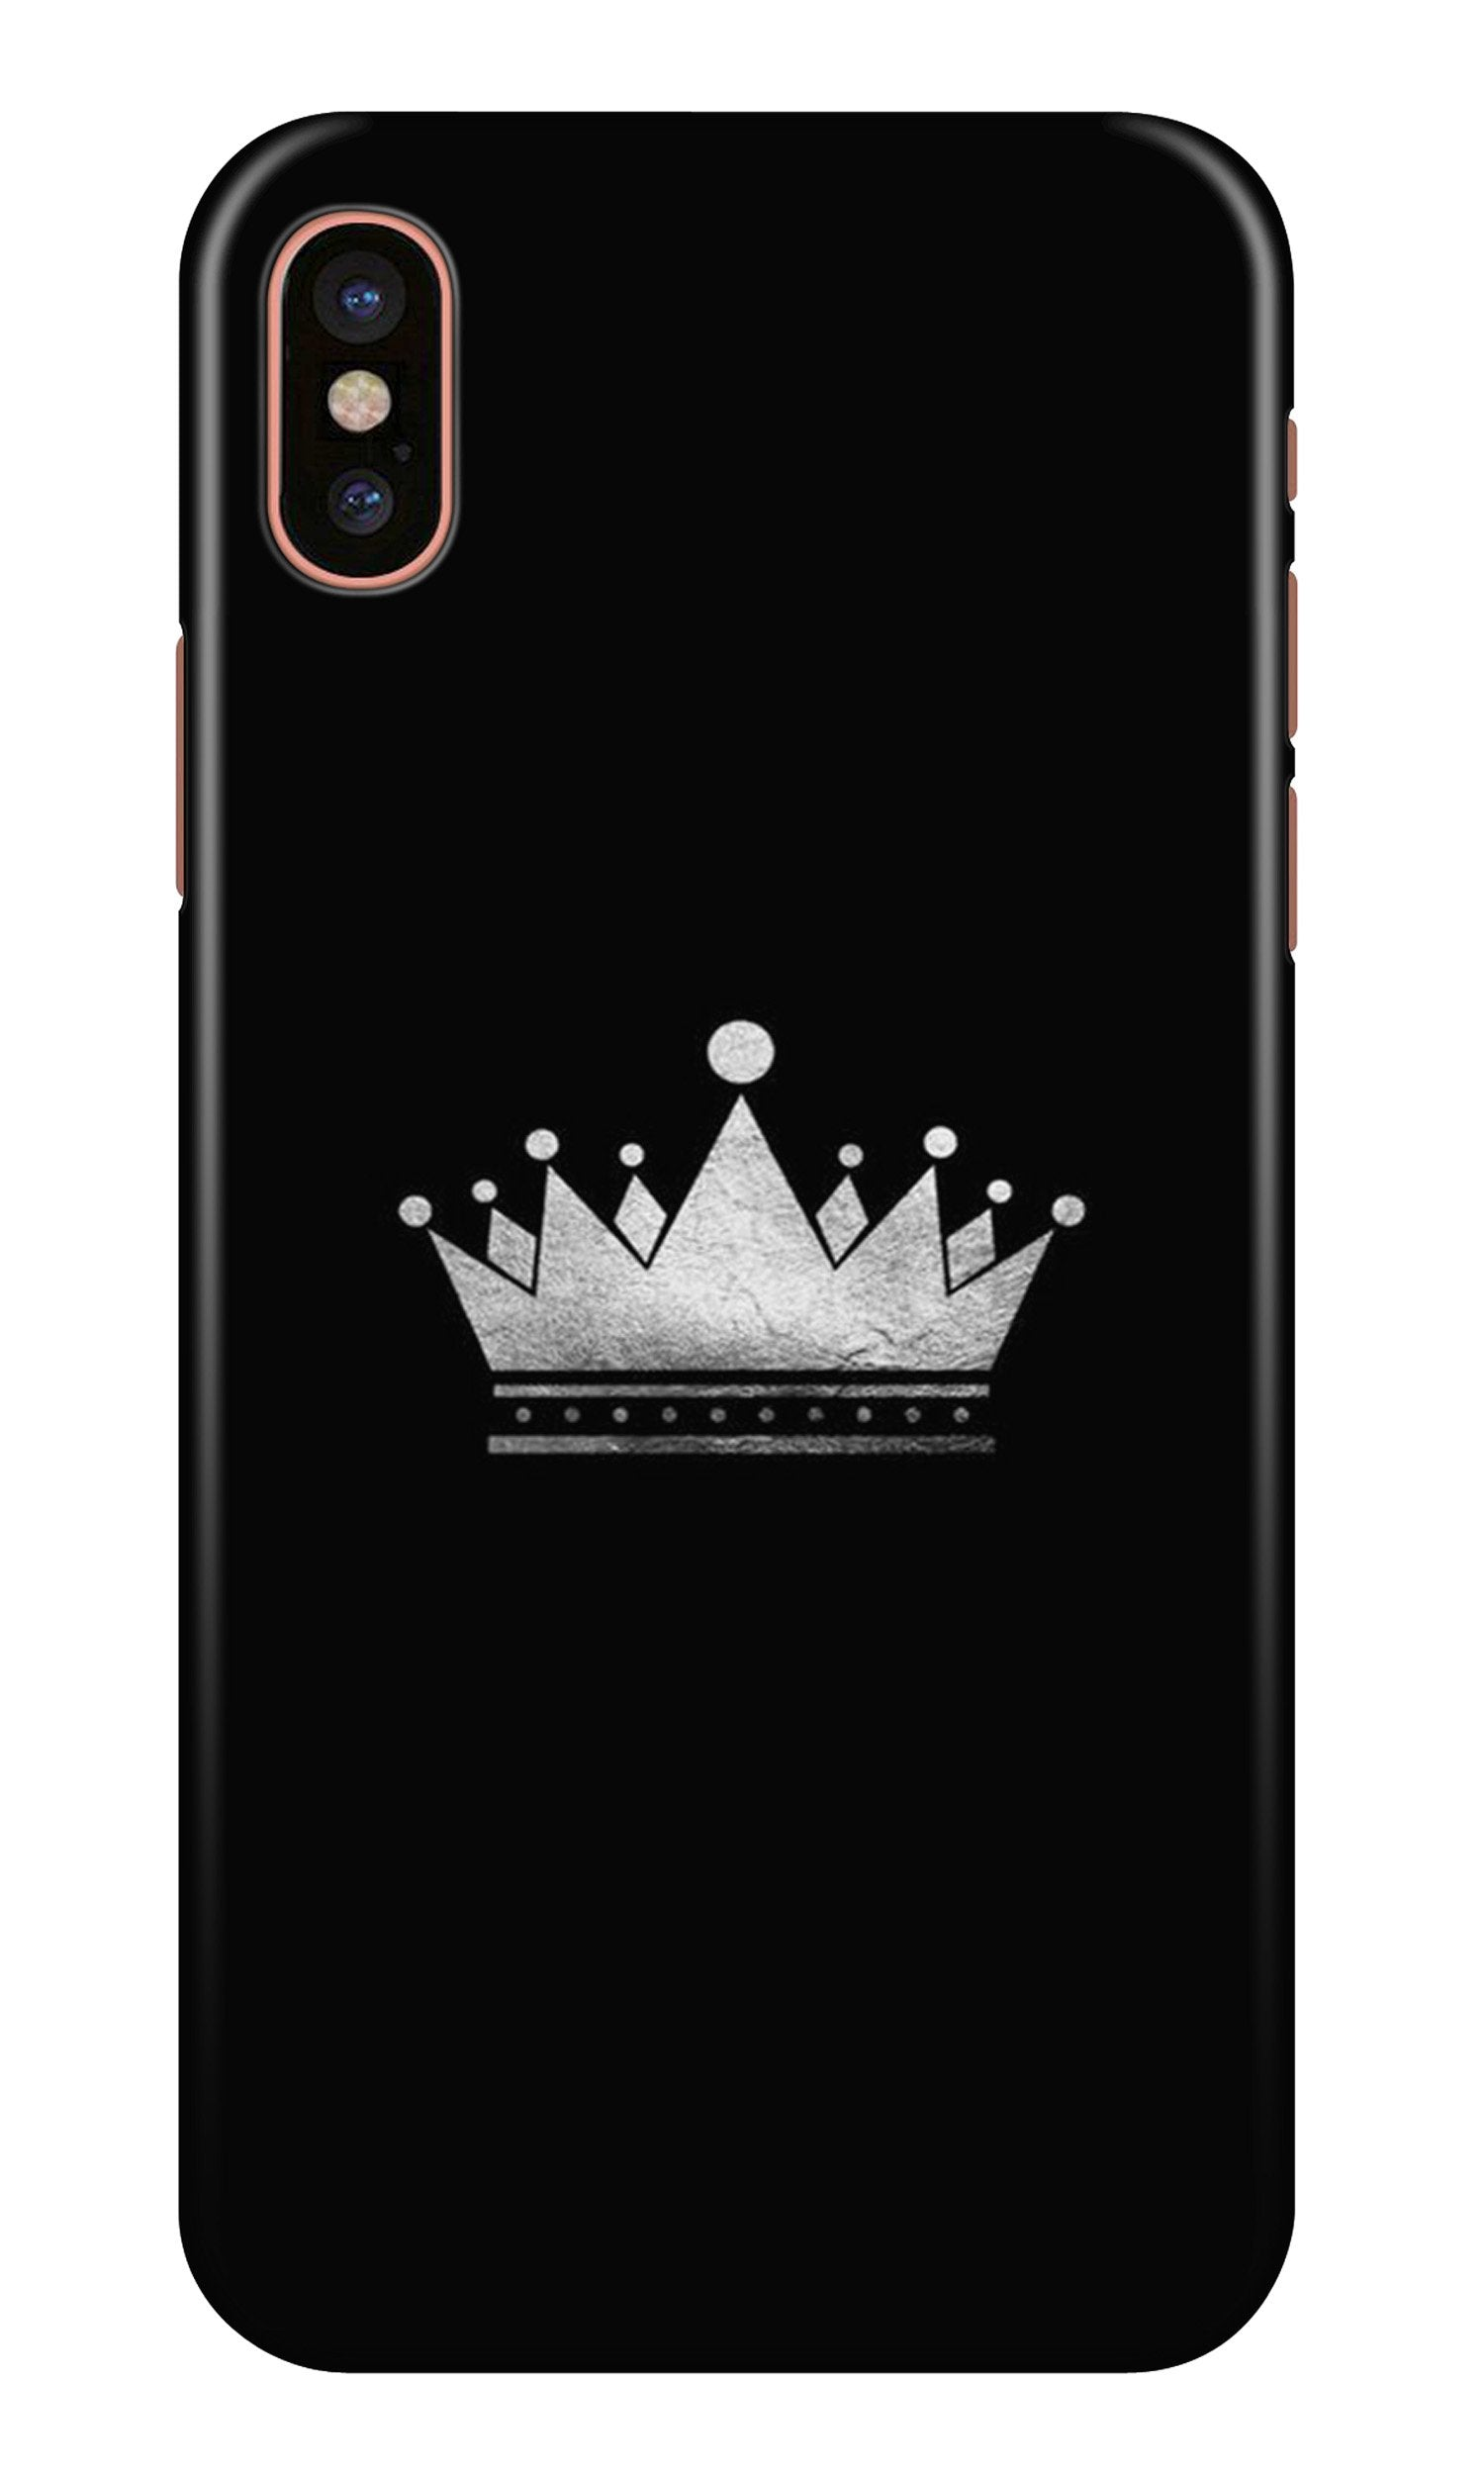 King Case for iPhone Xr (Design No. 280)